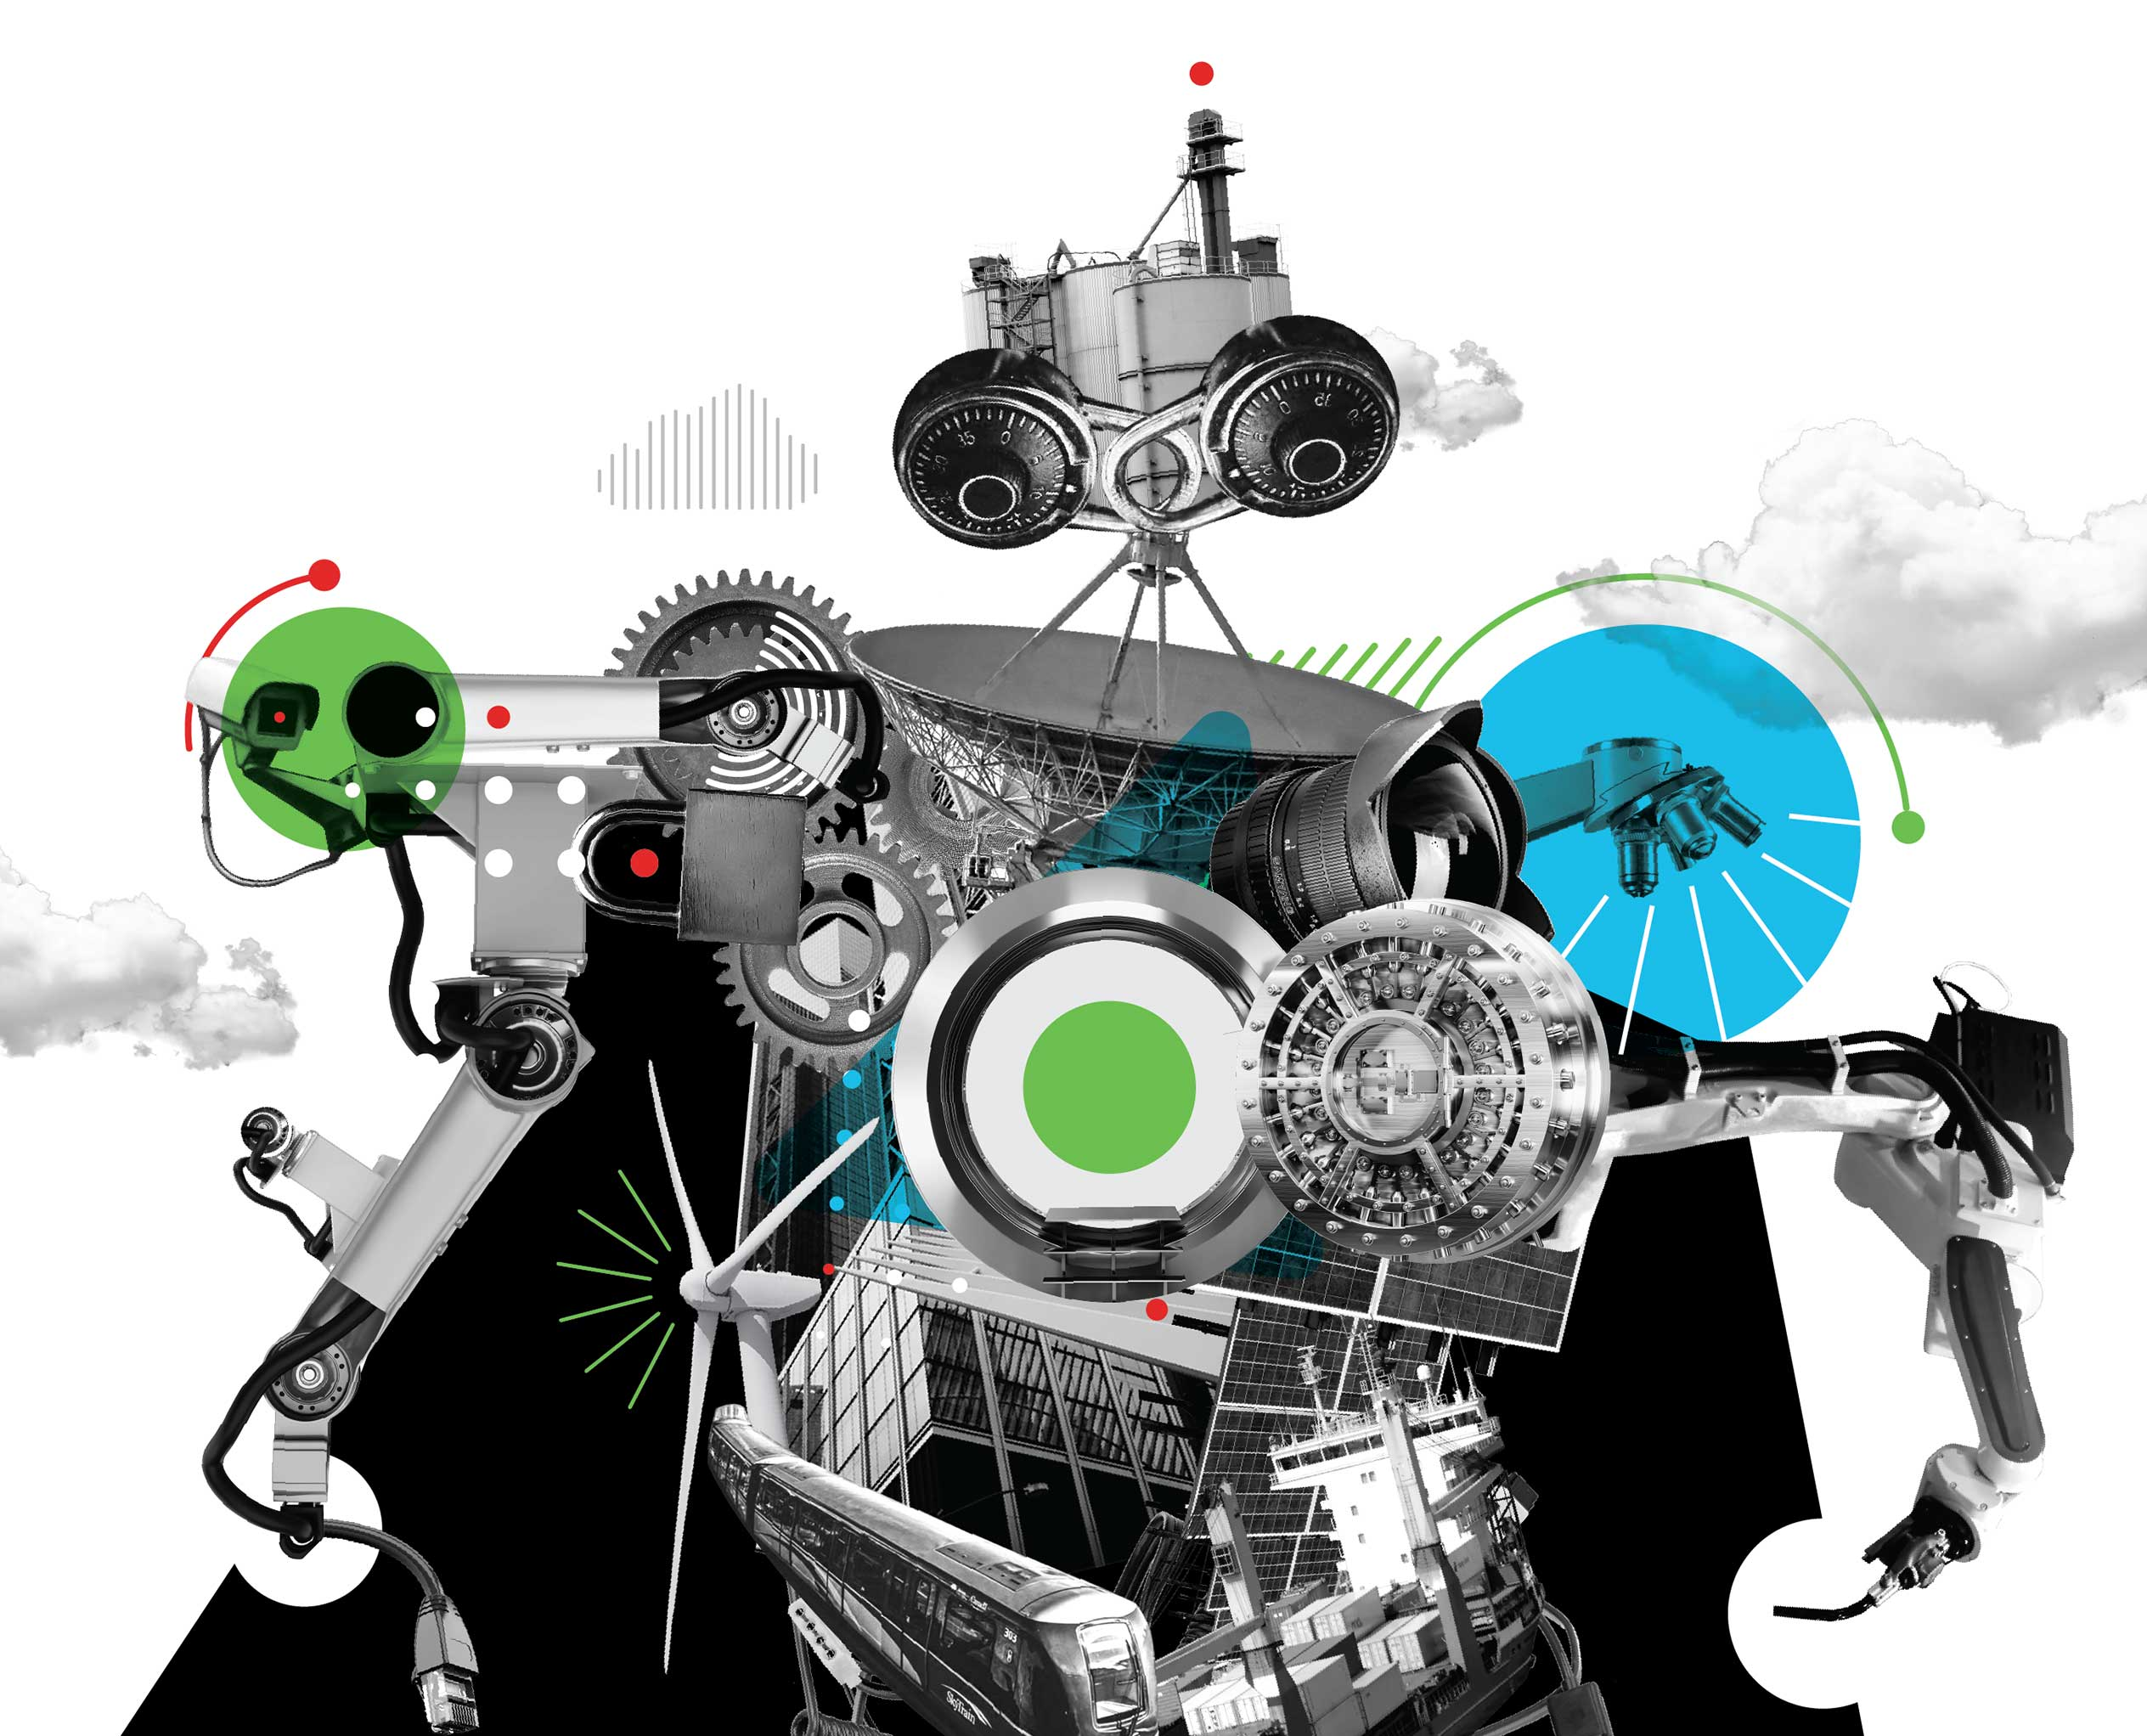 itsa 365: A kind of robot made of satellites